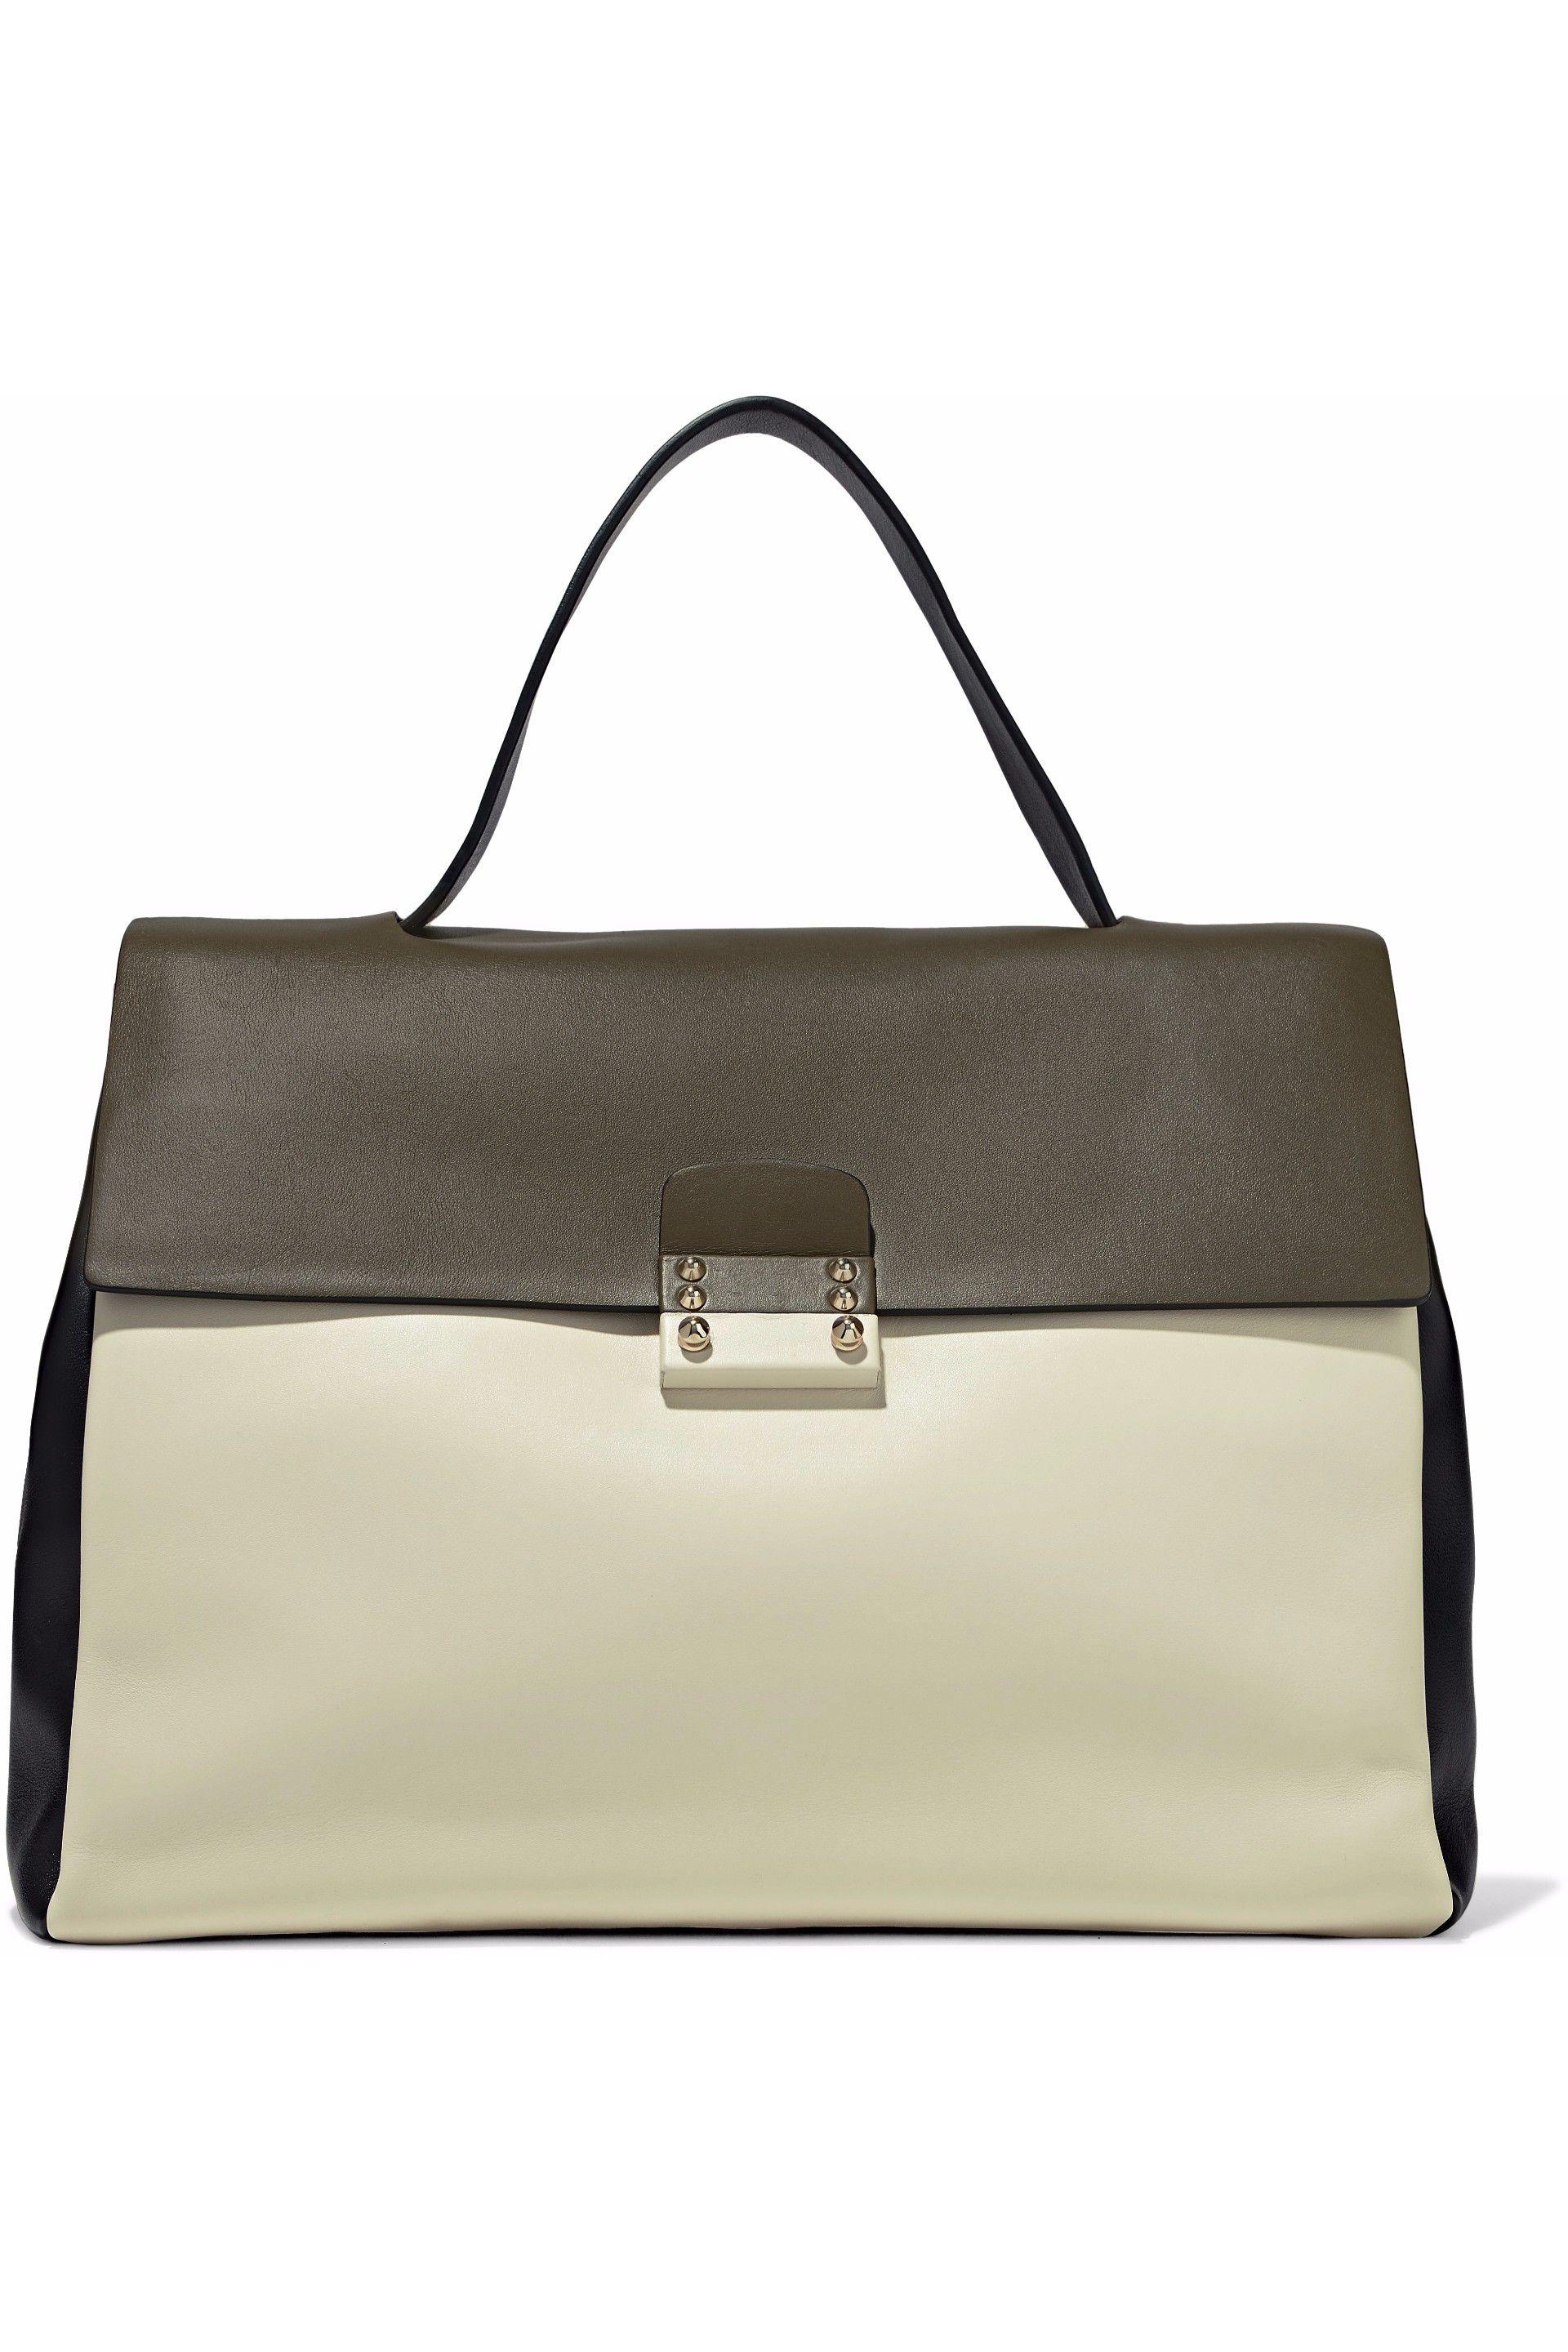 Valentino Colorblock Mime Handbag Leather Large